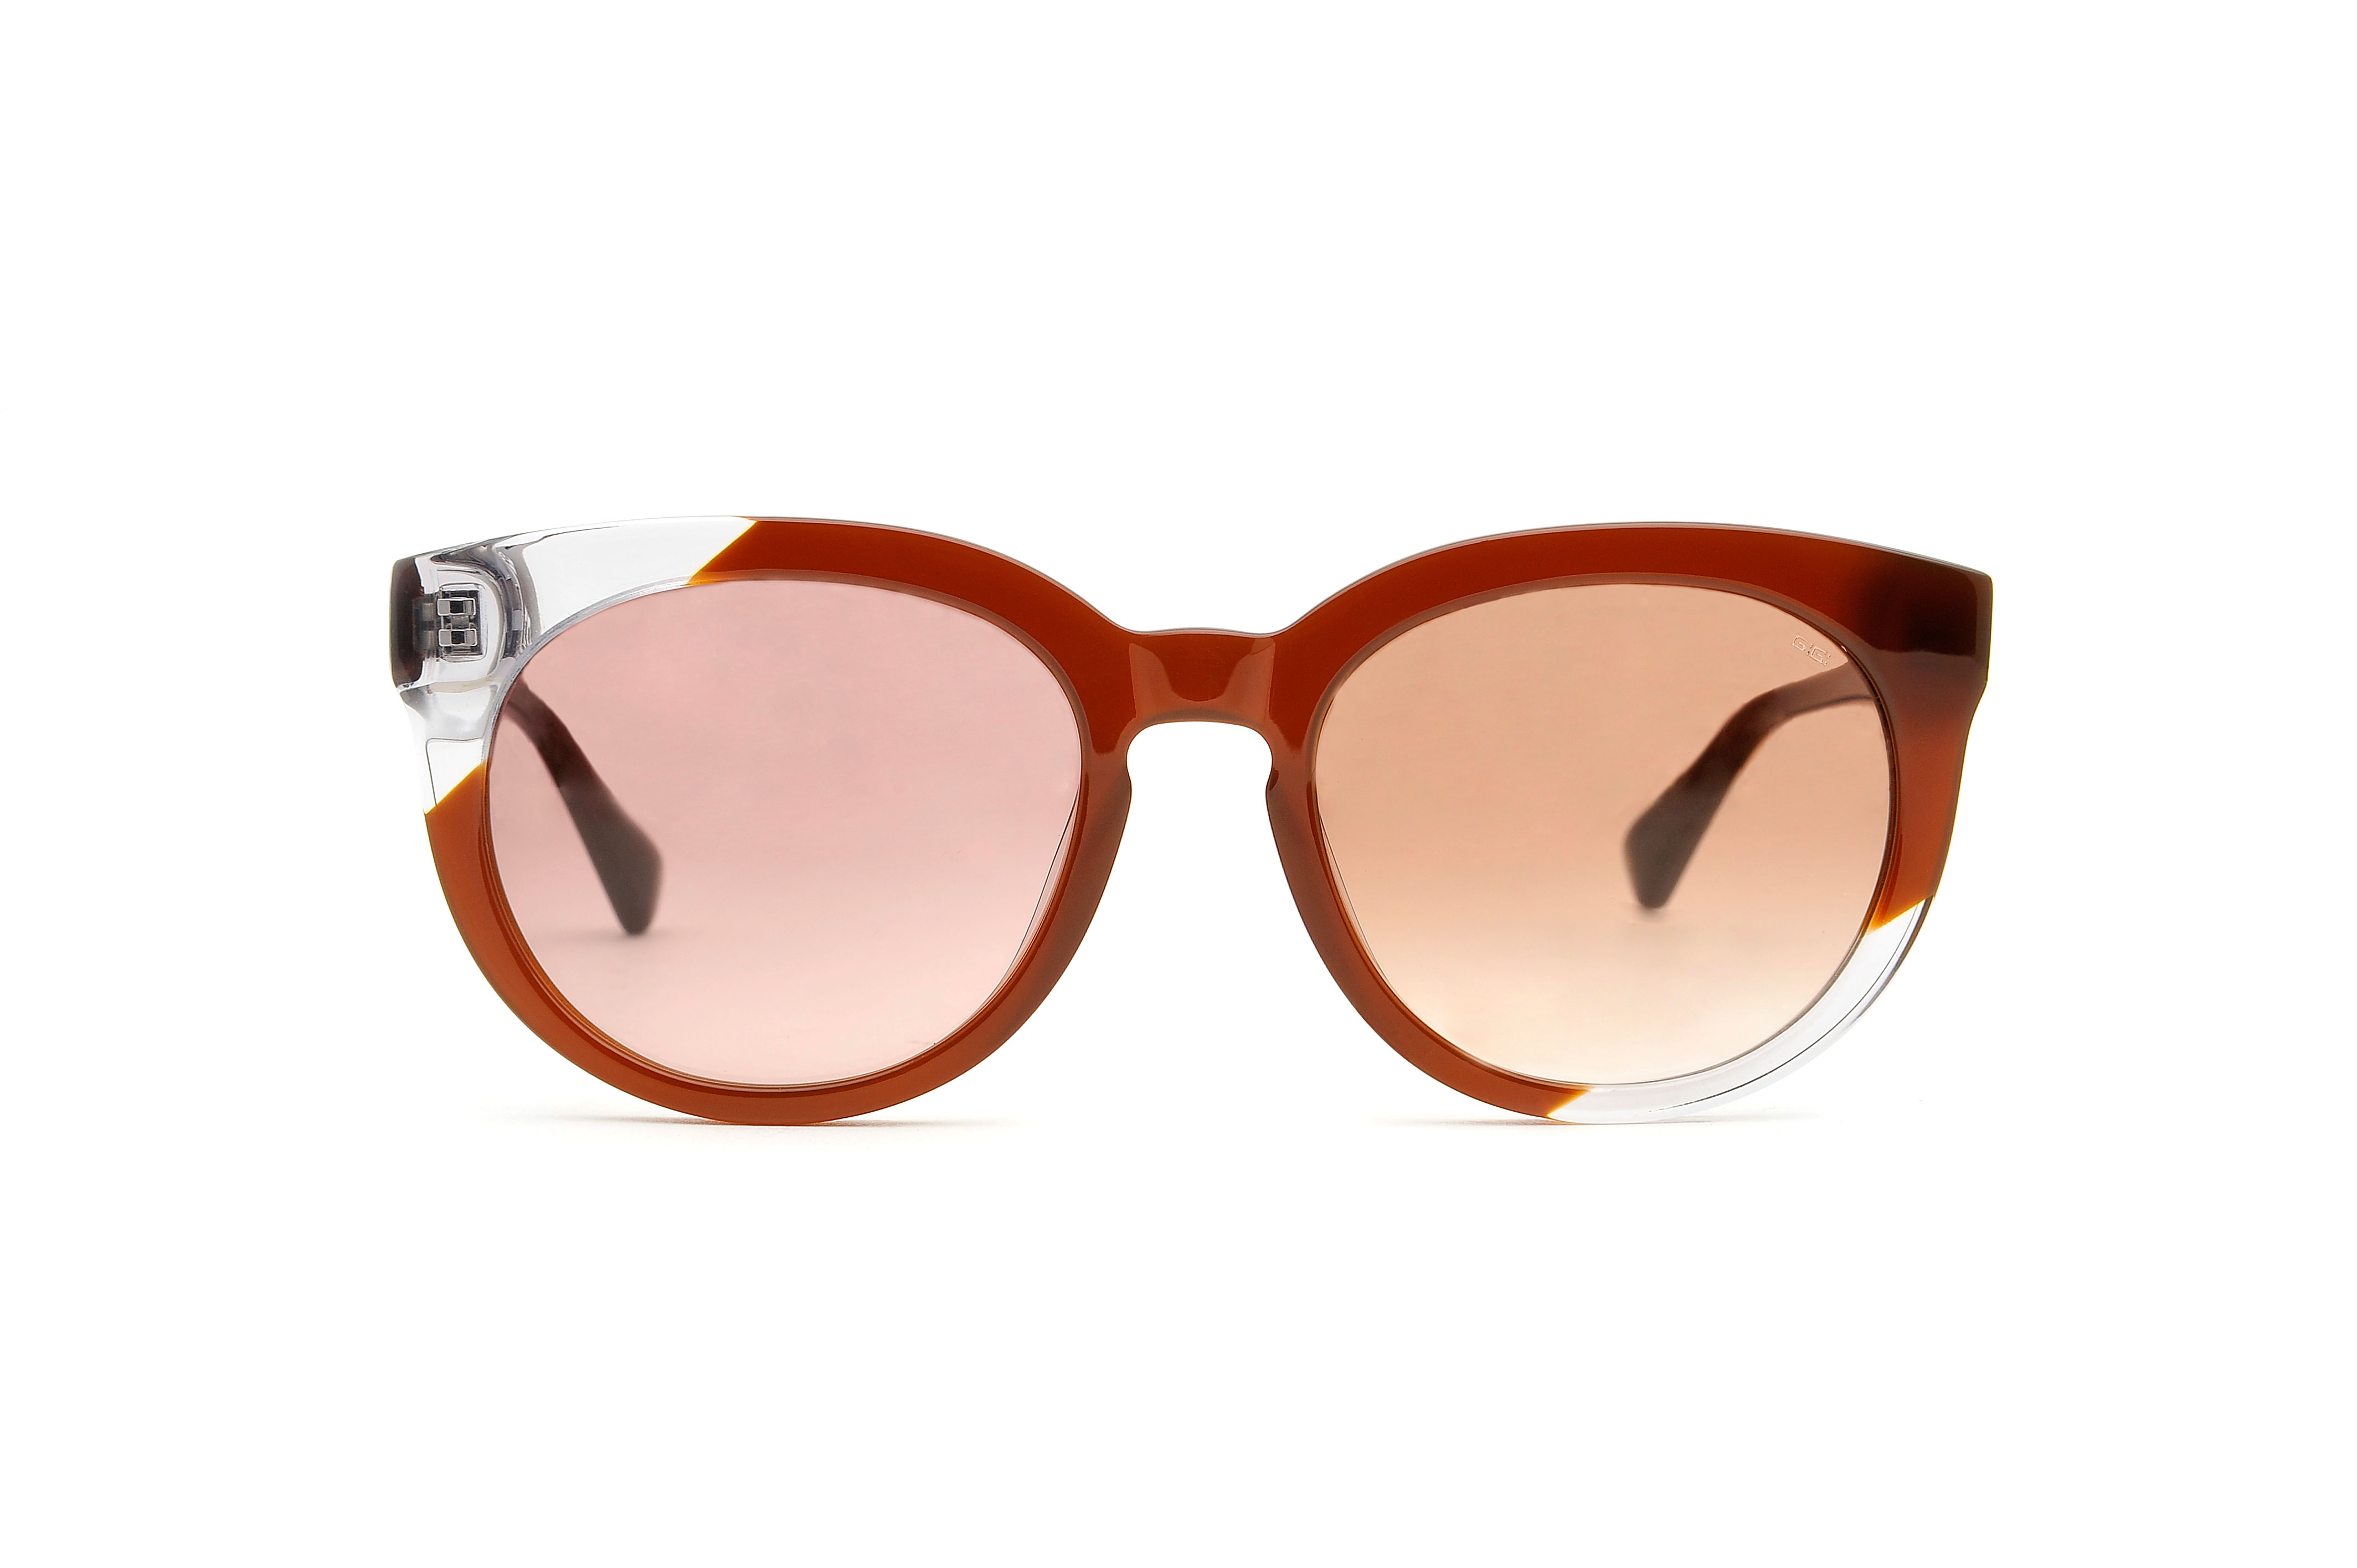 Marian acetate cat eye brown sunglasses by GIGI Studios